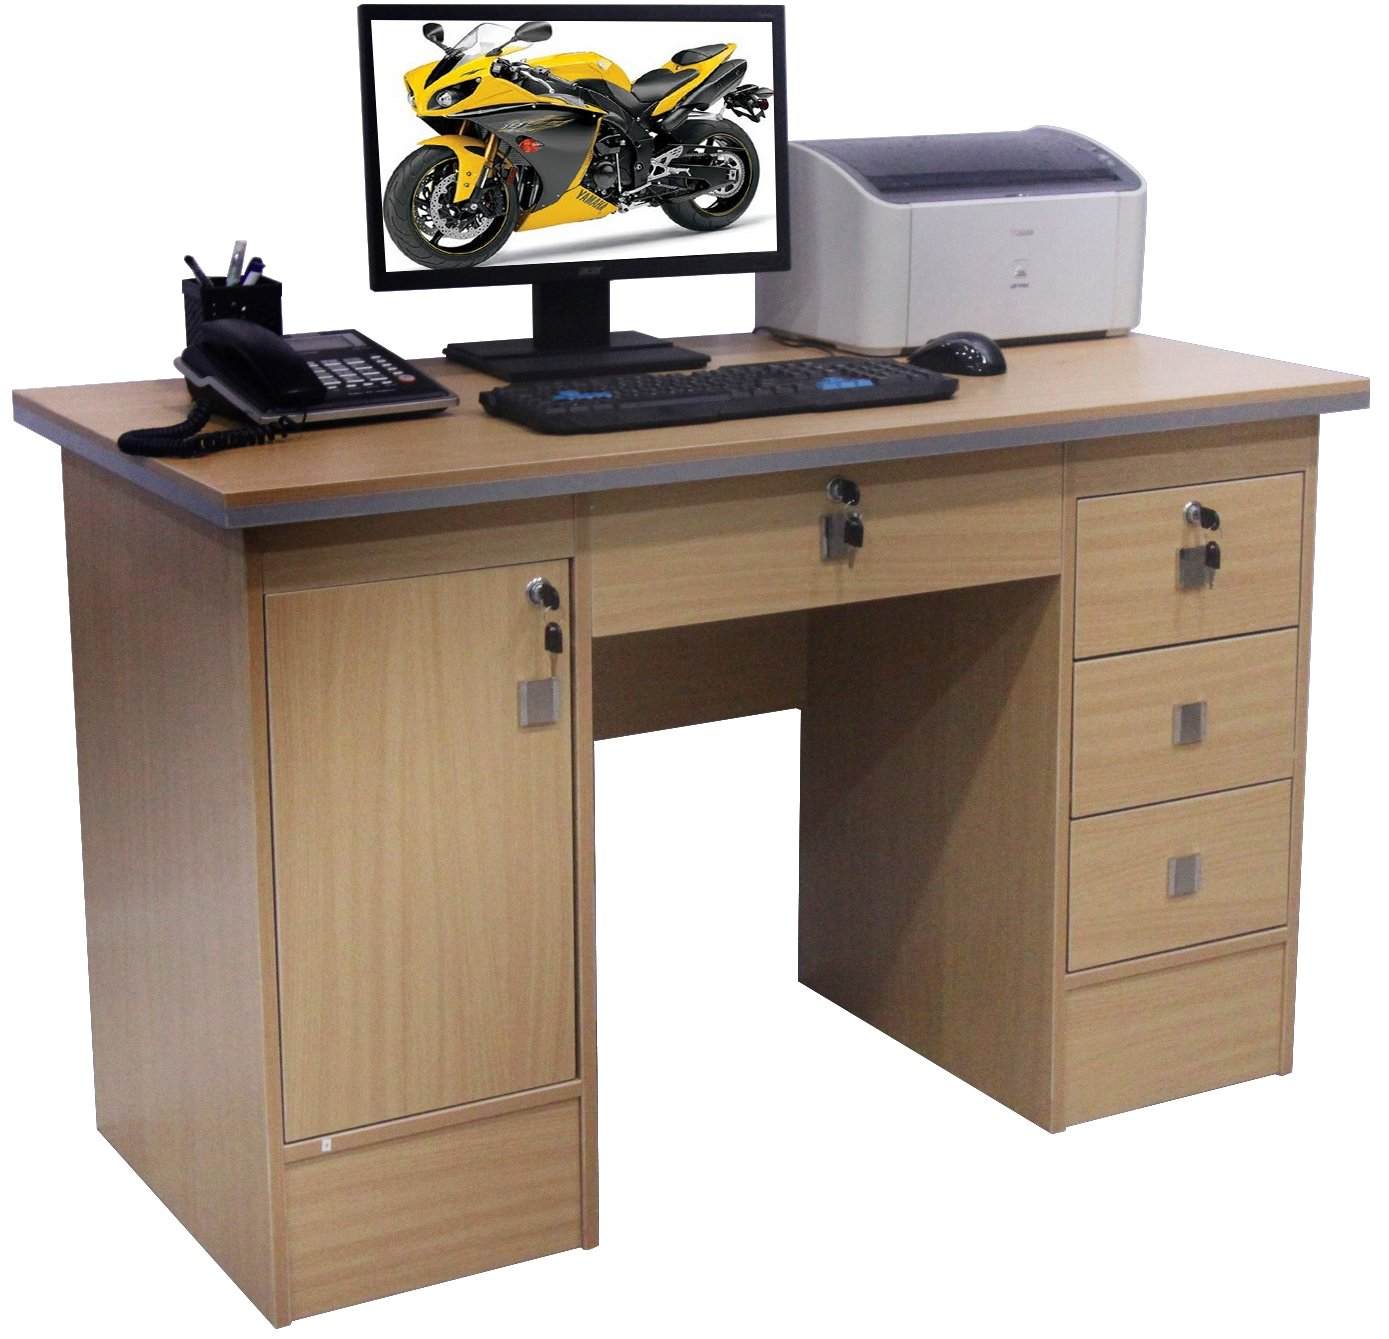 Computer Desk For Home Office PC Table in Beech, Black White and Walnut Clr With 3 Locks (Beech Desk 617/110) Westen Deals